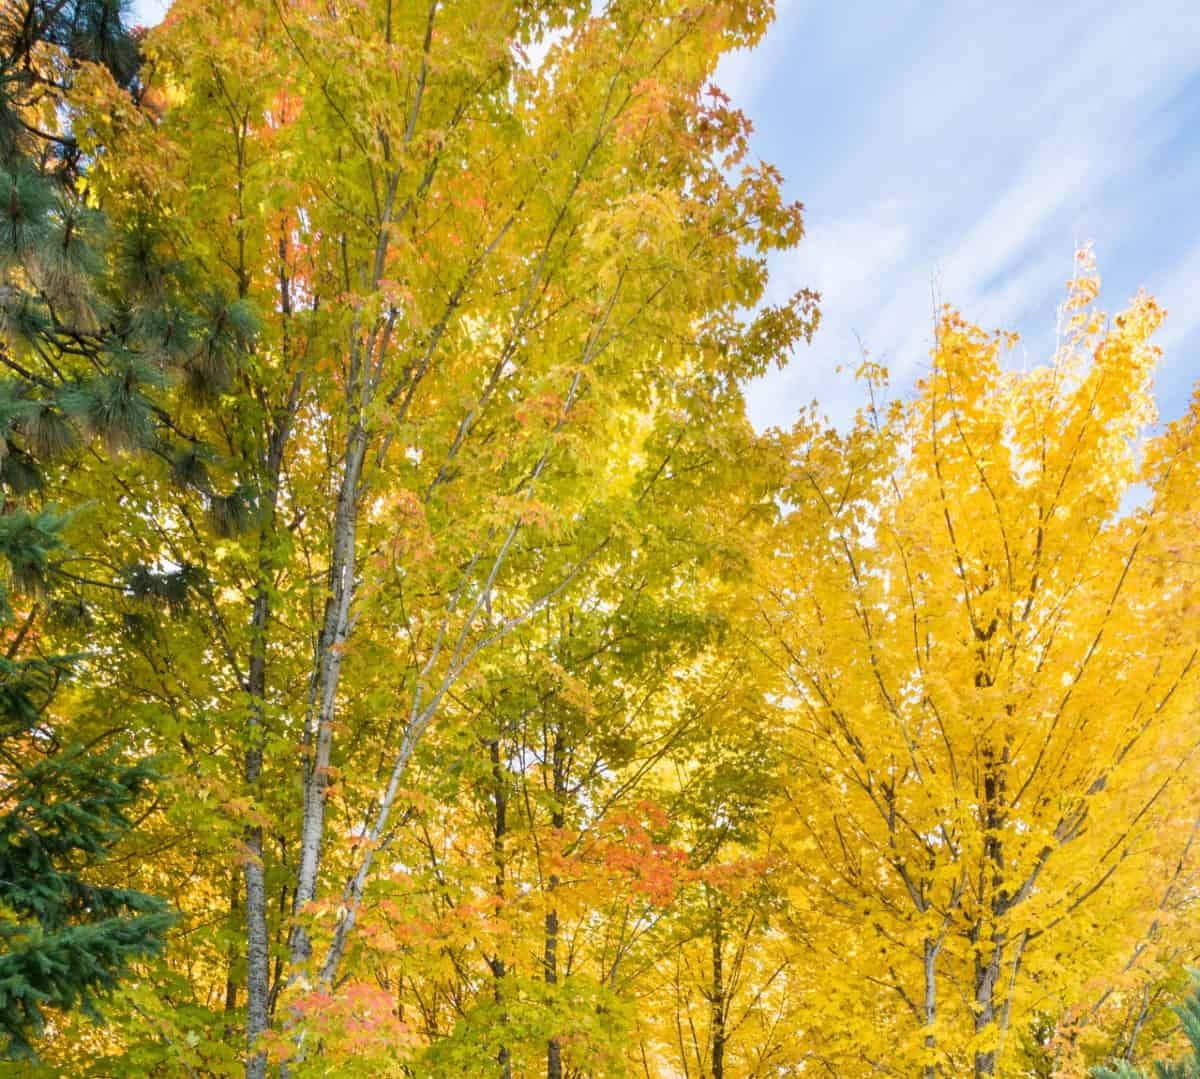 The sugar maple is probably the most popular tree for spectacular fall foliage.